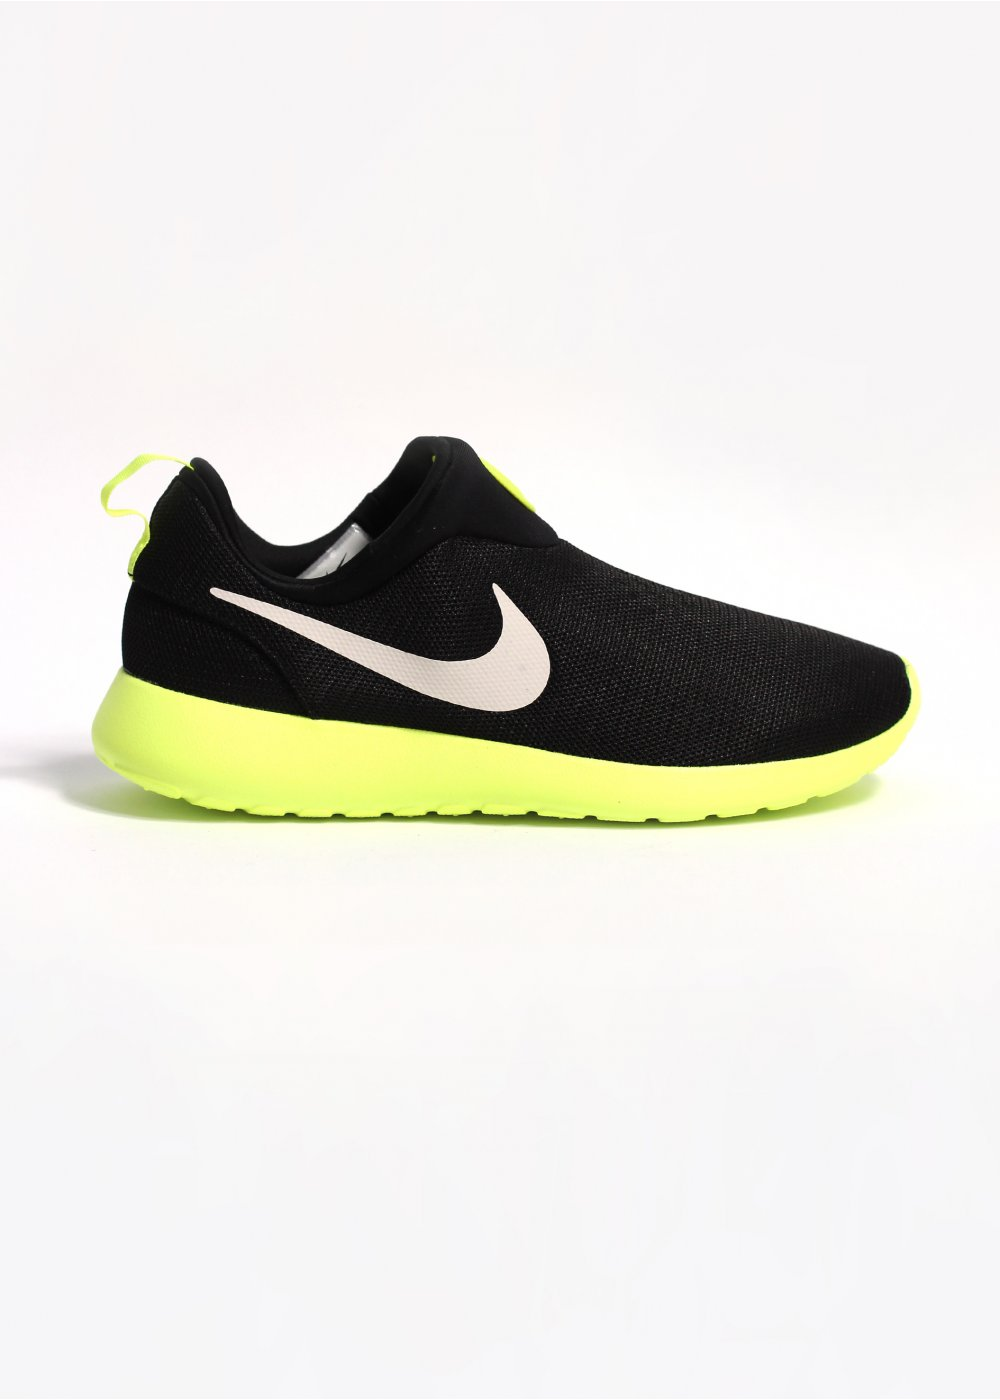 dedb42f0cb4d Rosherun Slip On Trainers - Black   White   Volt